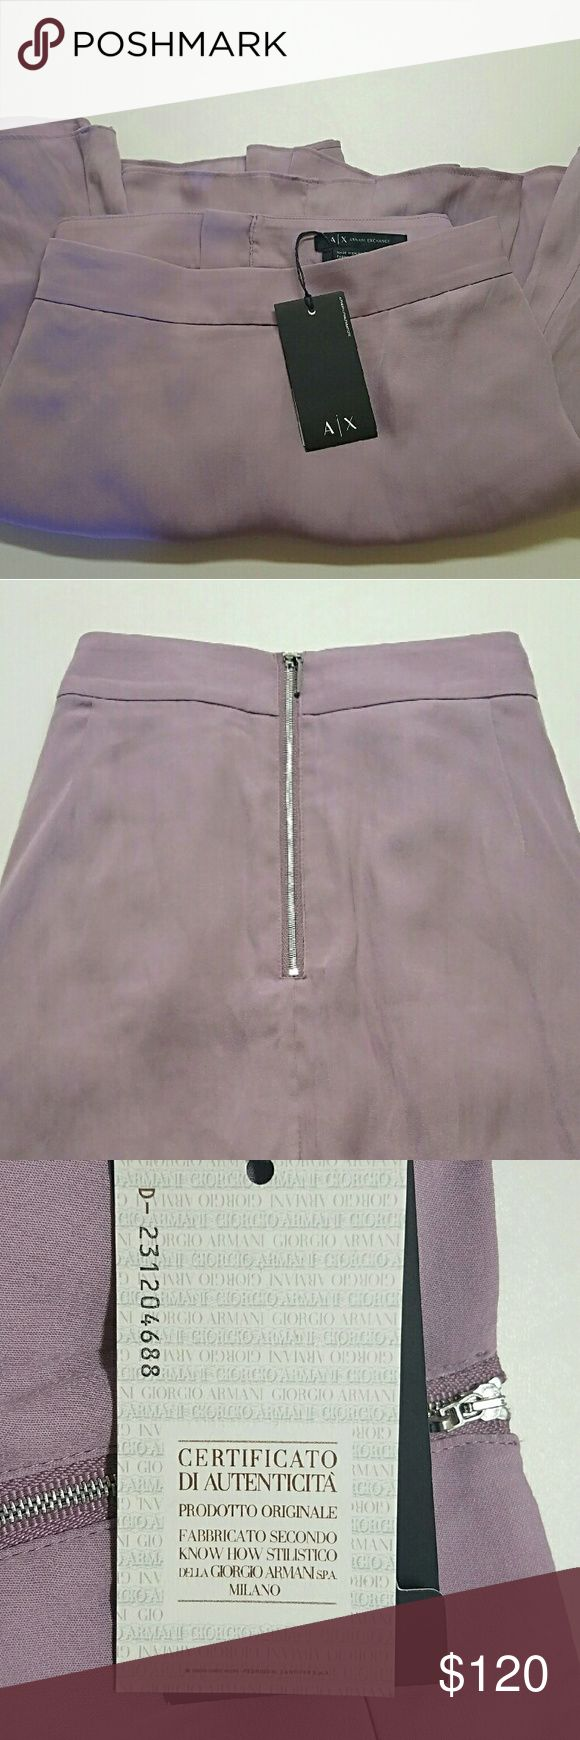 ARMANI X  Silk Mini Skort  NWT!!! AX Mini Skort in Mystic Mauve. Made in a lightweight flowy silk. This is definitely fun and flirty, especially for summer. Perfect for day into night!!! Silver zip up back. Two fitted side pockets. Don't let this gem get away, these are VERY hard to find!!! Armani Exchange Skirts Mini